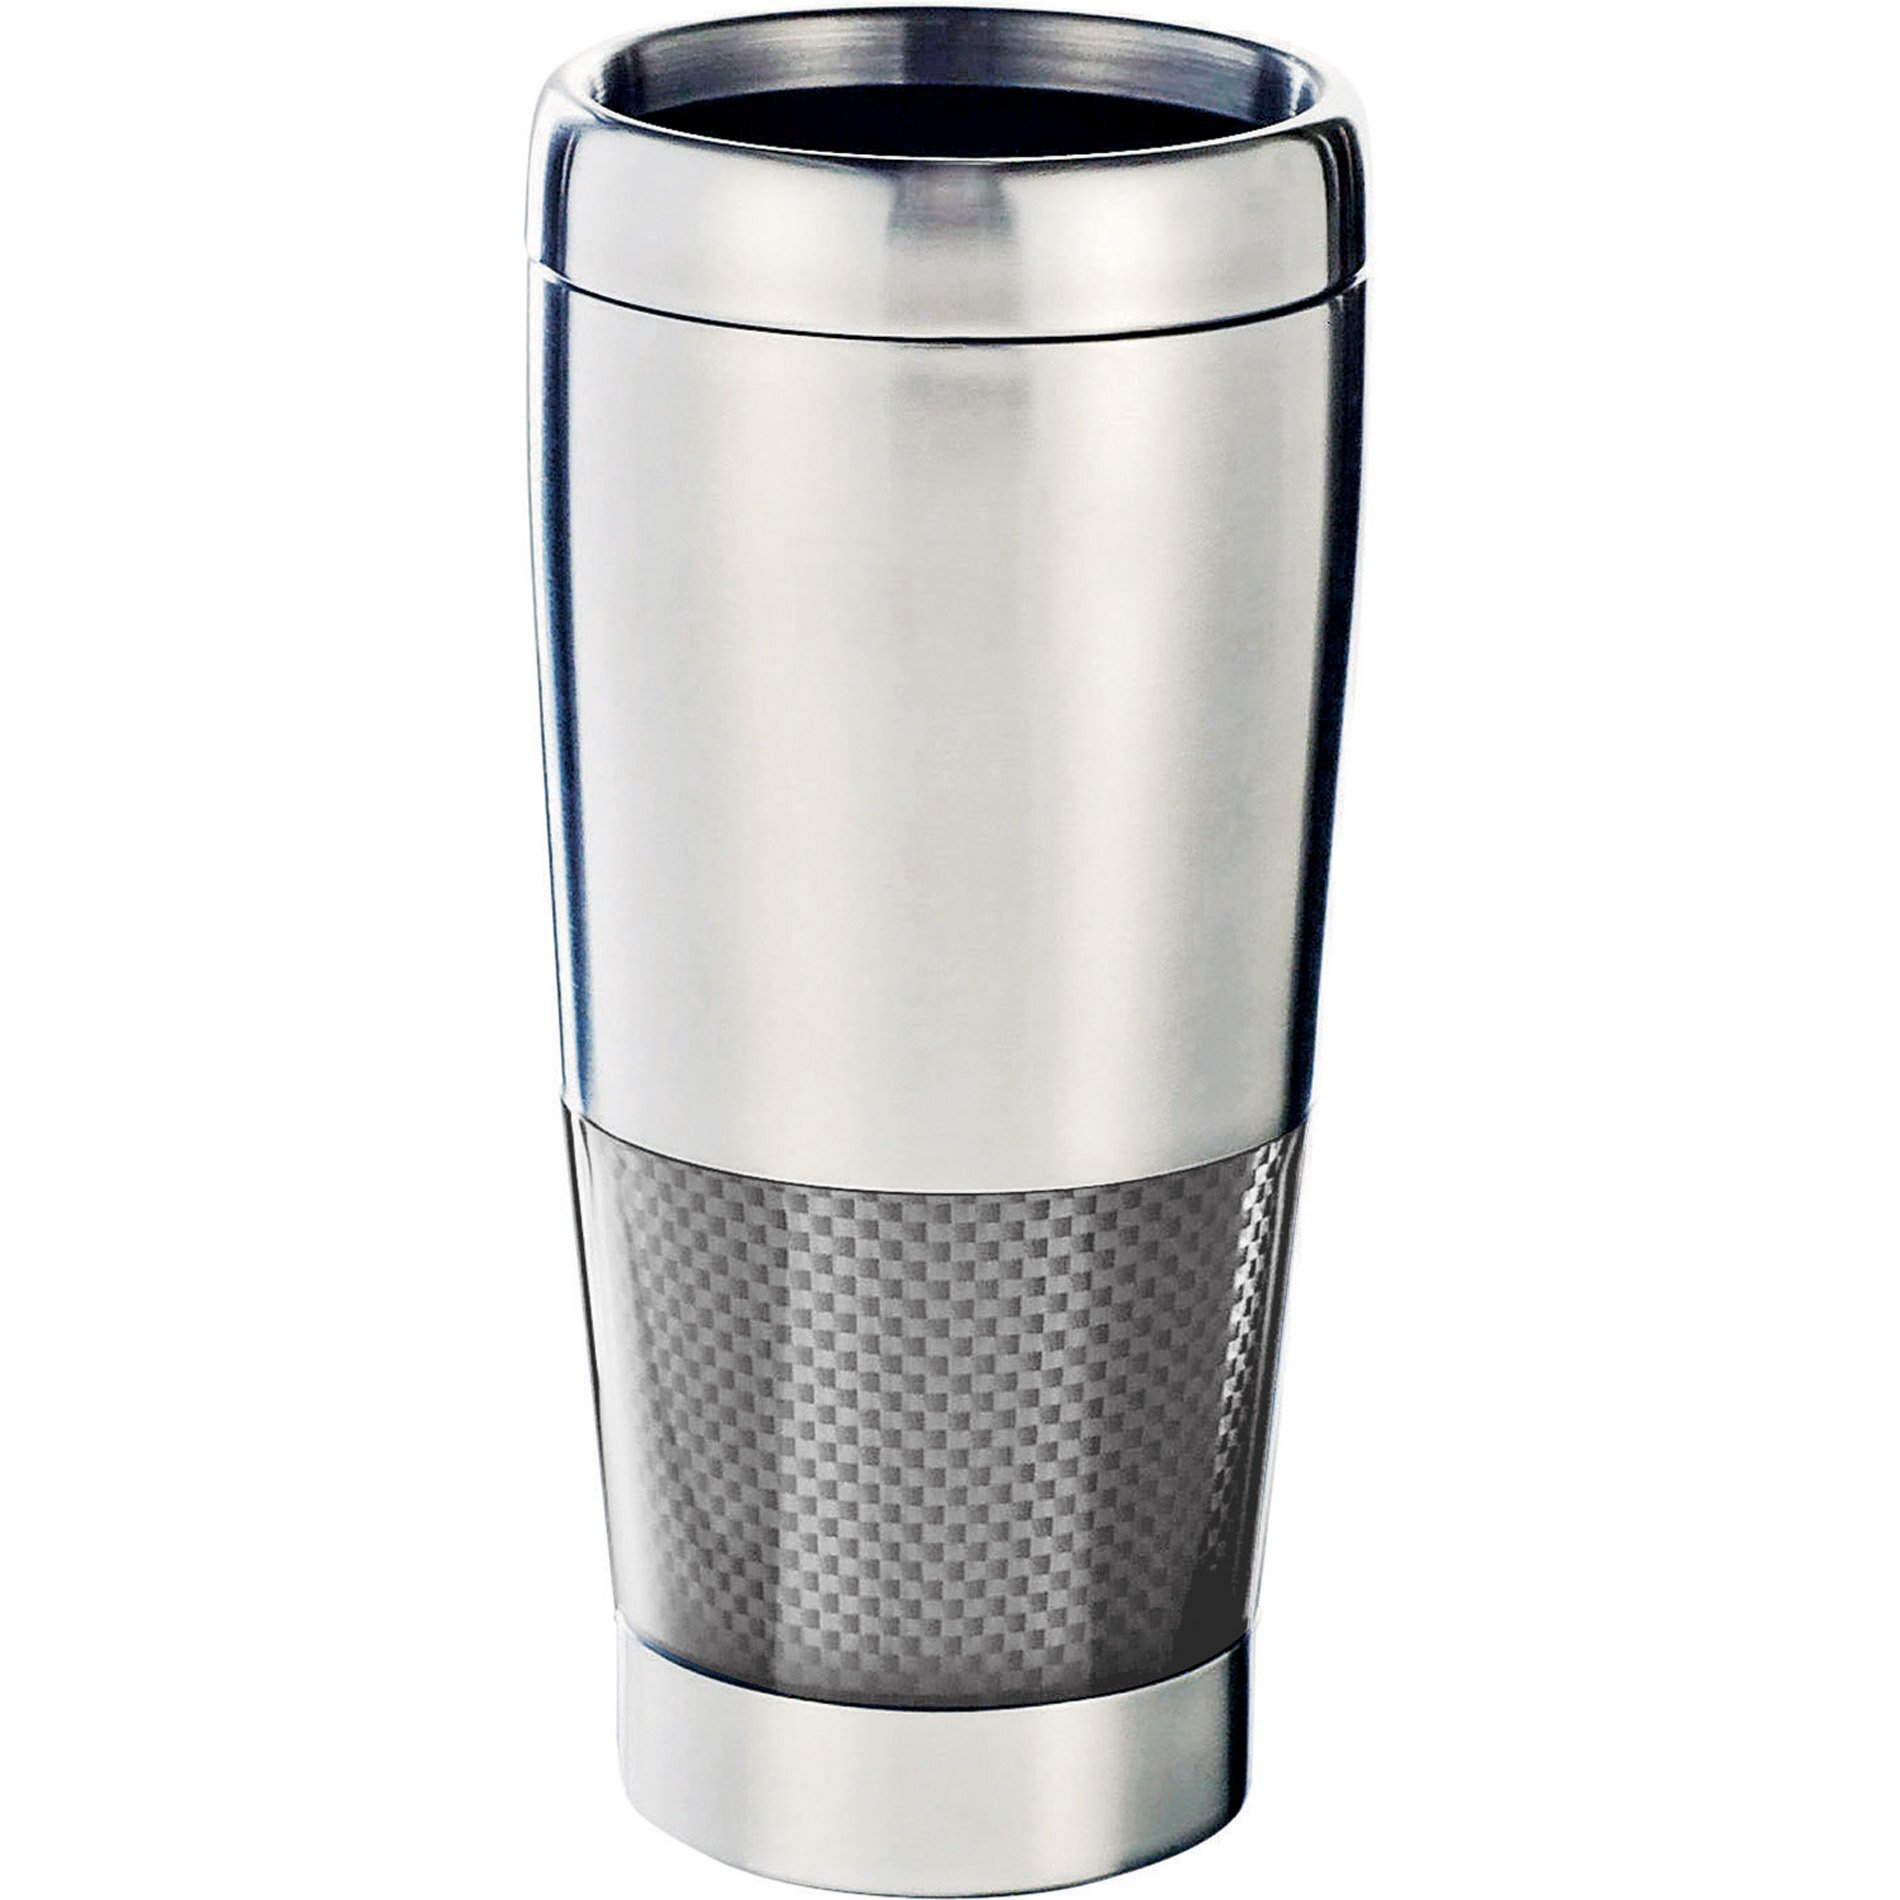 Phantom Stainless Steel Tumbler, 16oz.